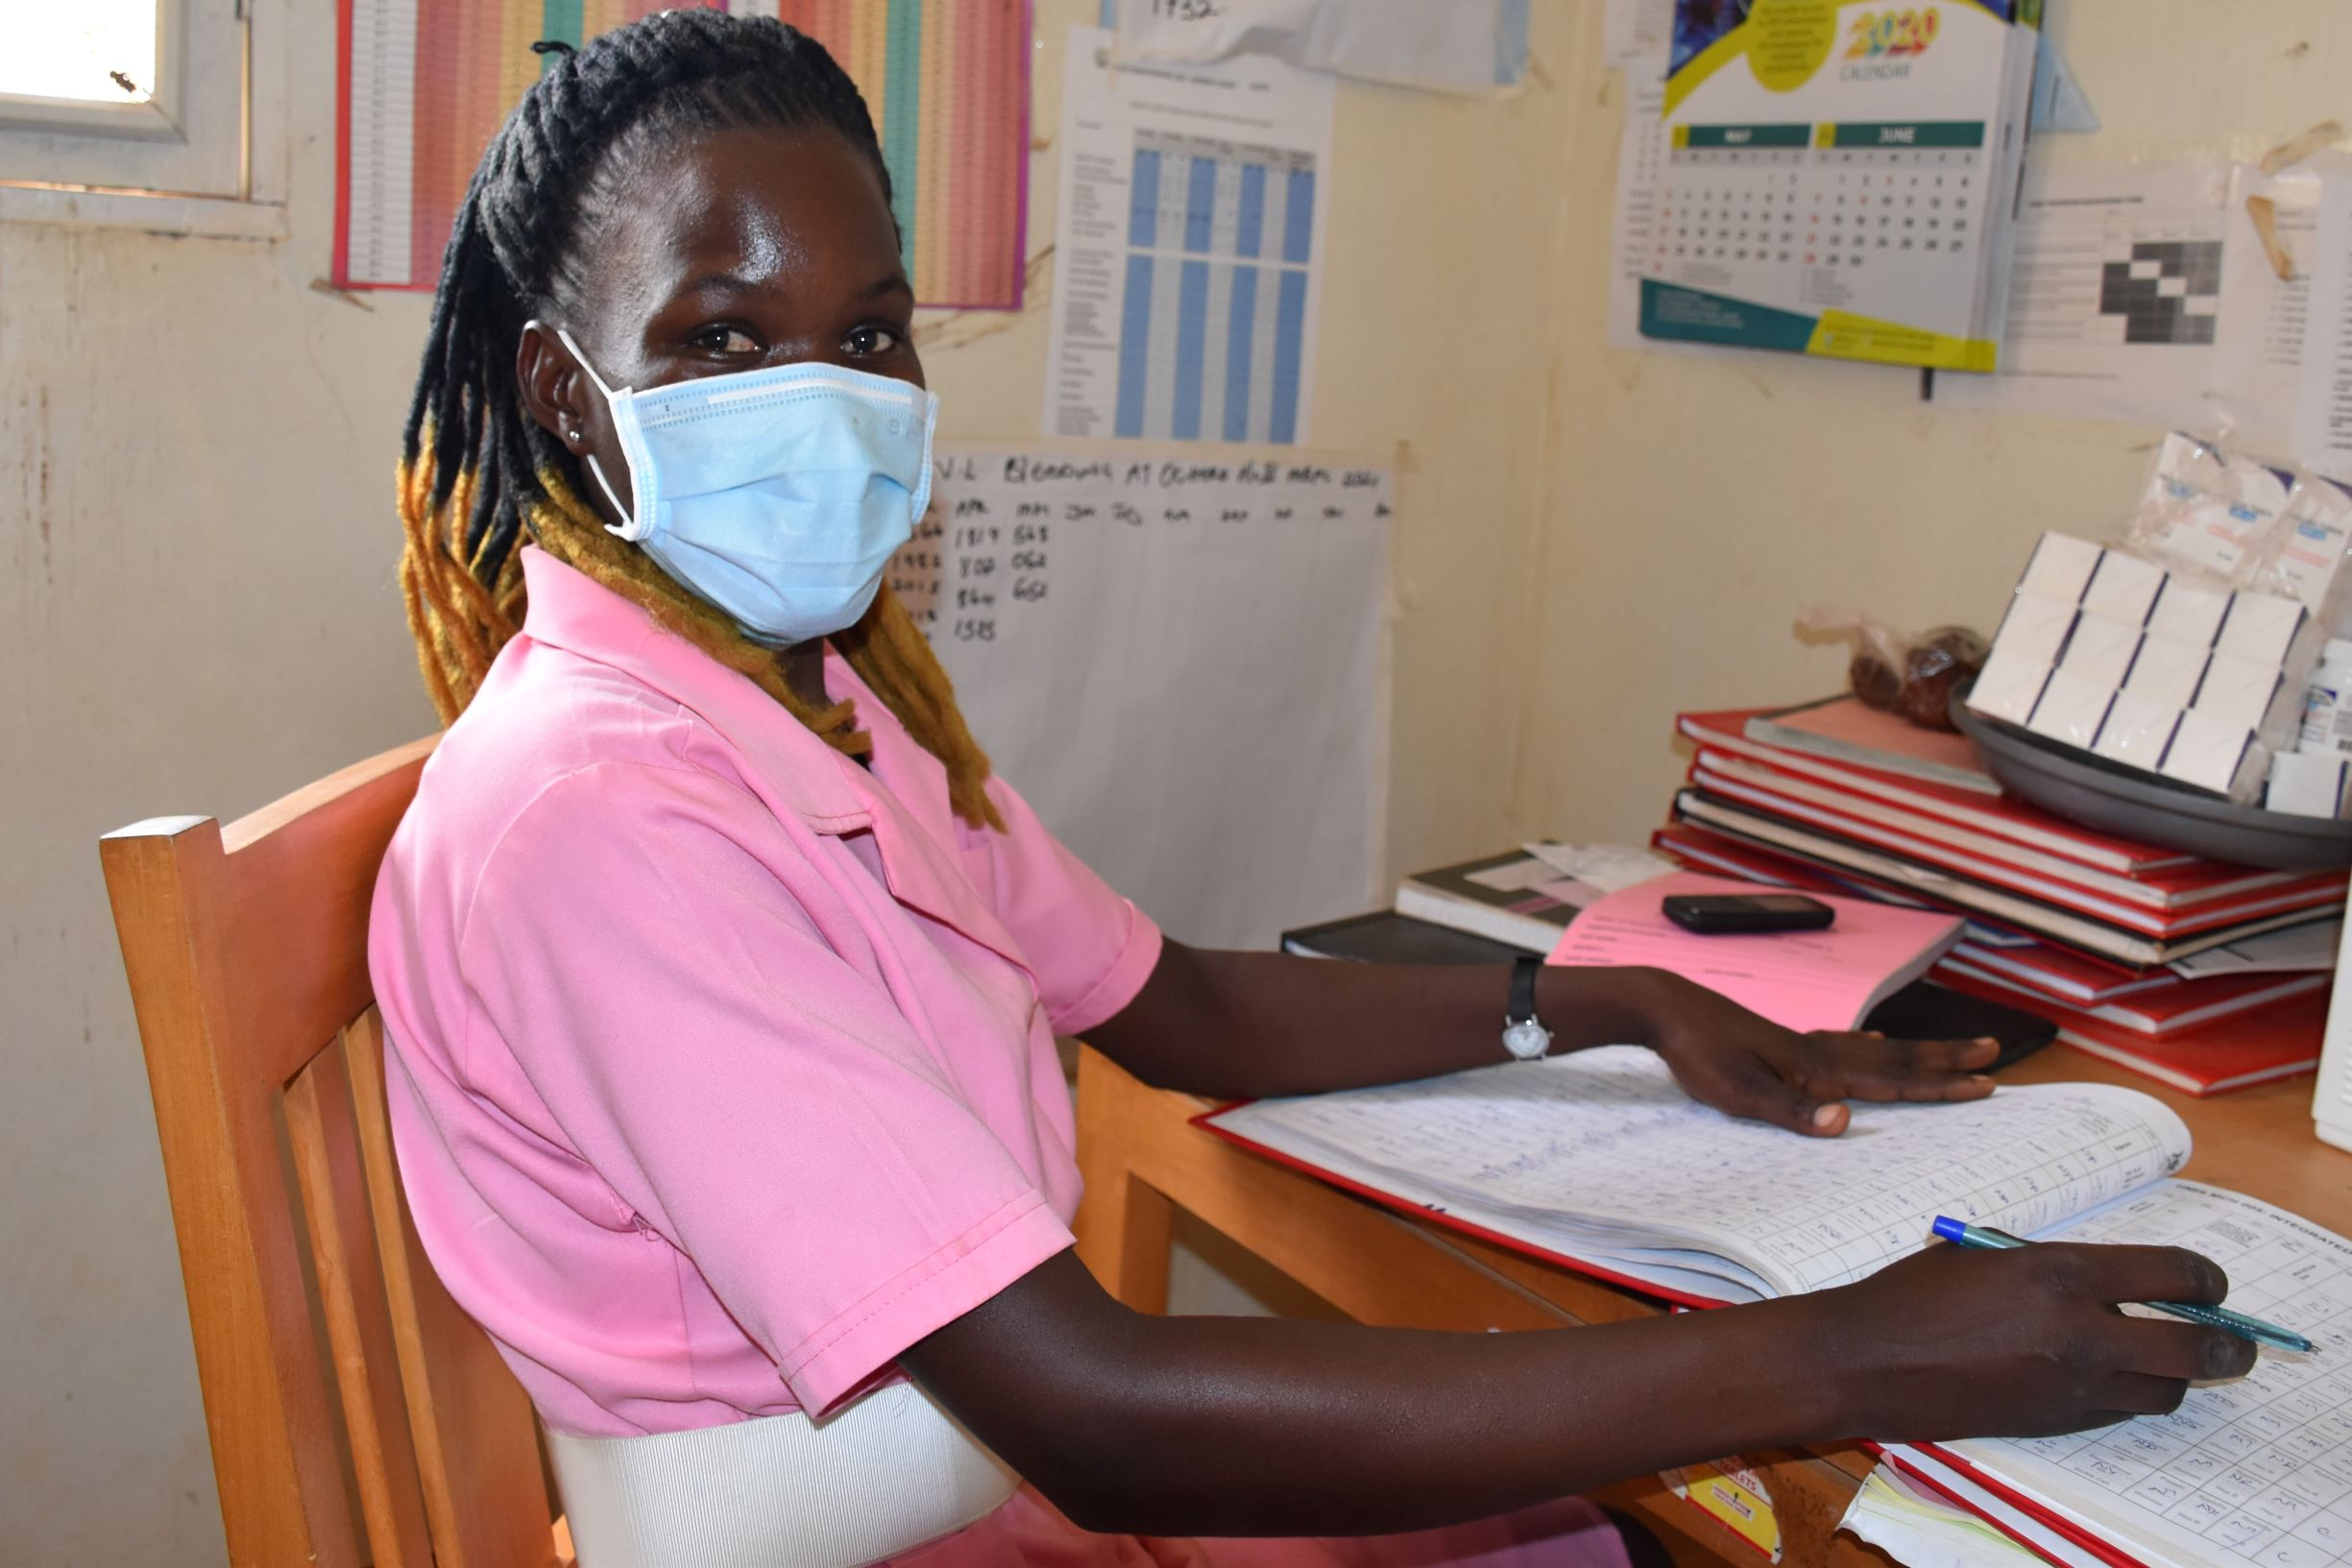 Catherine, a midwife at Ochero Health Center III, adapted quickly to continue providing high-quality maternal and child health services to mothers who come to the health center. Photo by Irene Mirembe for IntraHealth International.